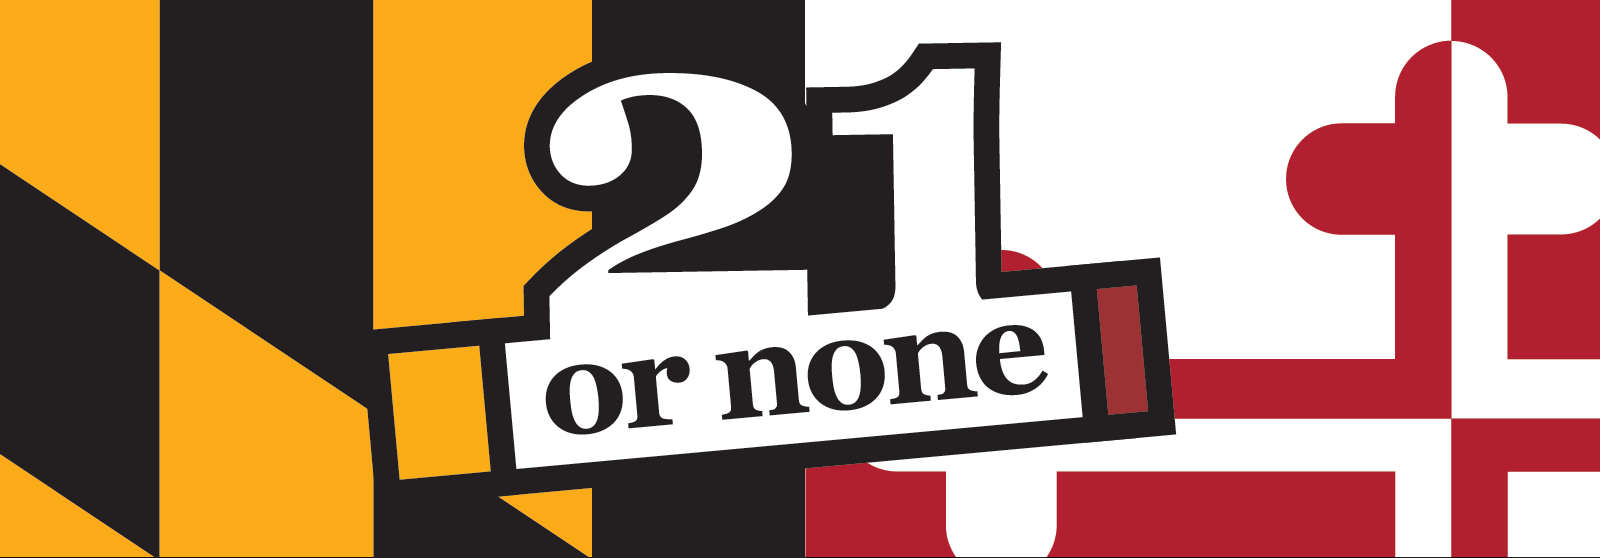 21 or None banner image.PNG